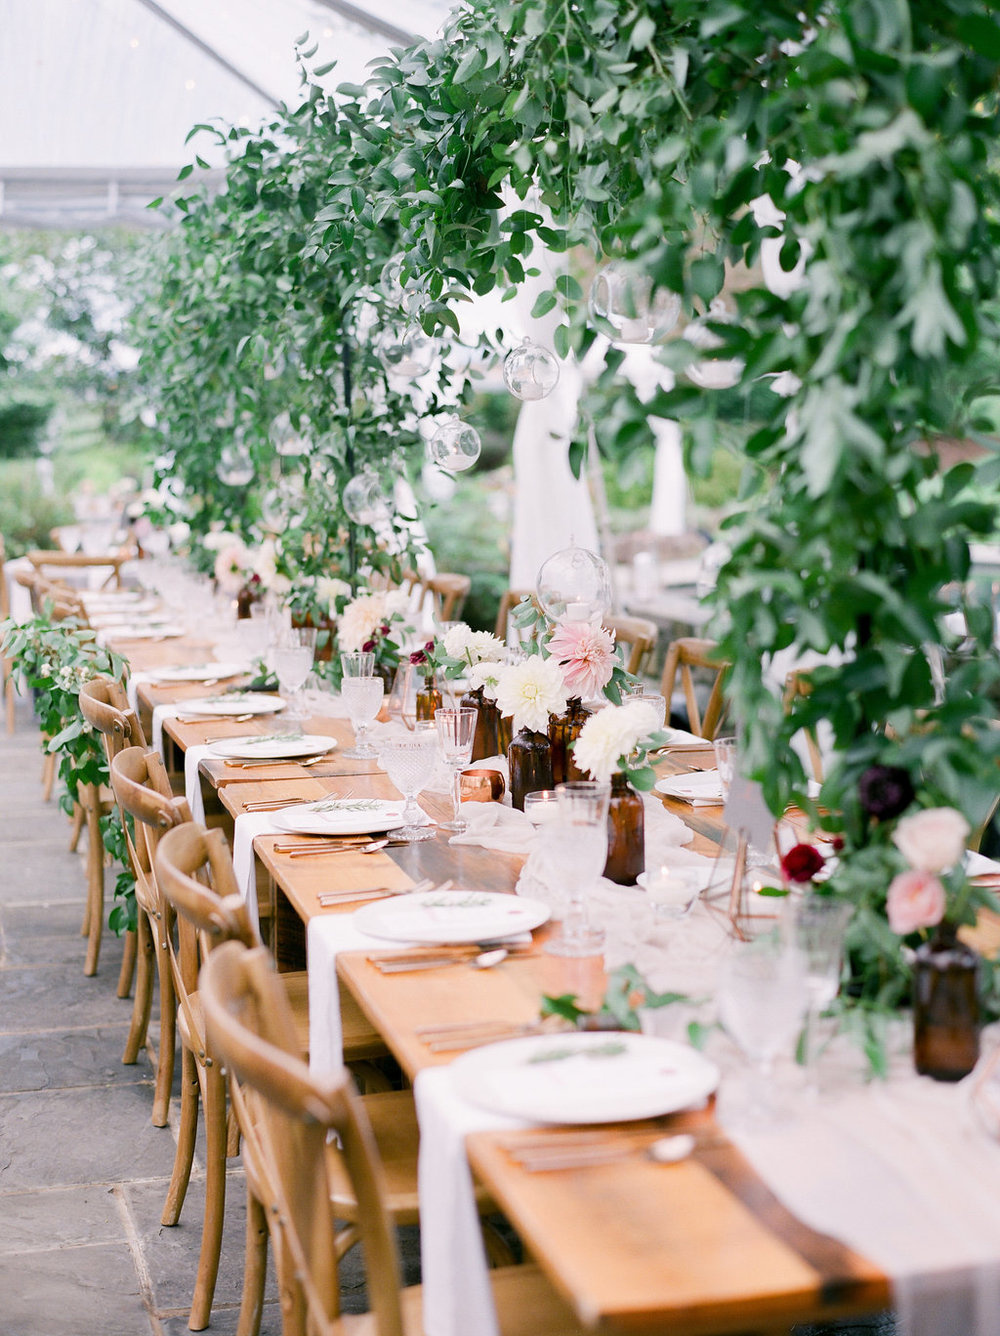 Virginia Countryside Fall Wedding by East Made Event Company fine art destination wedding planner and Julie Paisley Photography as featured on Style Me Pretty98.jpg